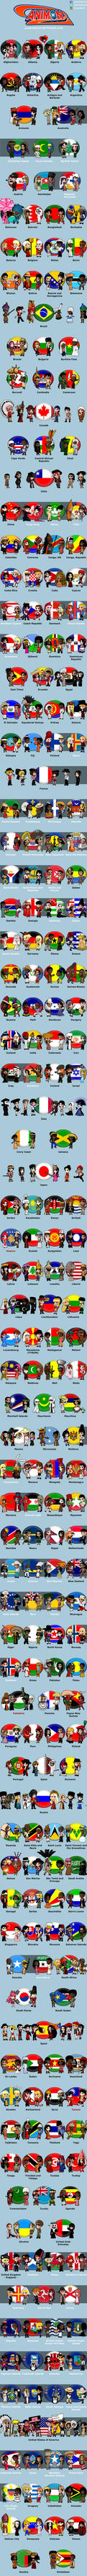 All countries in the world with national costume by Dougieus